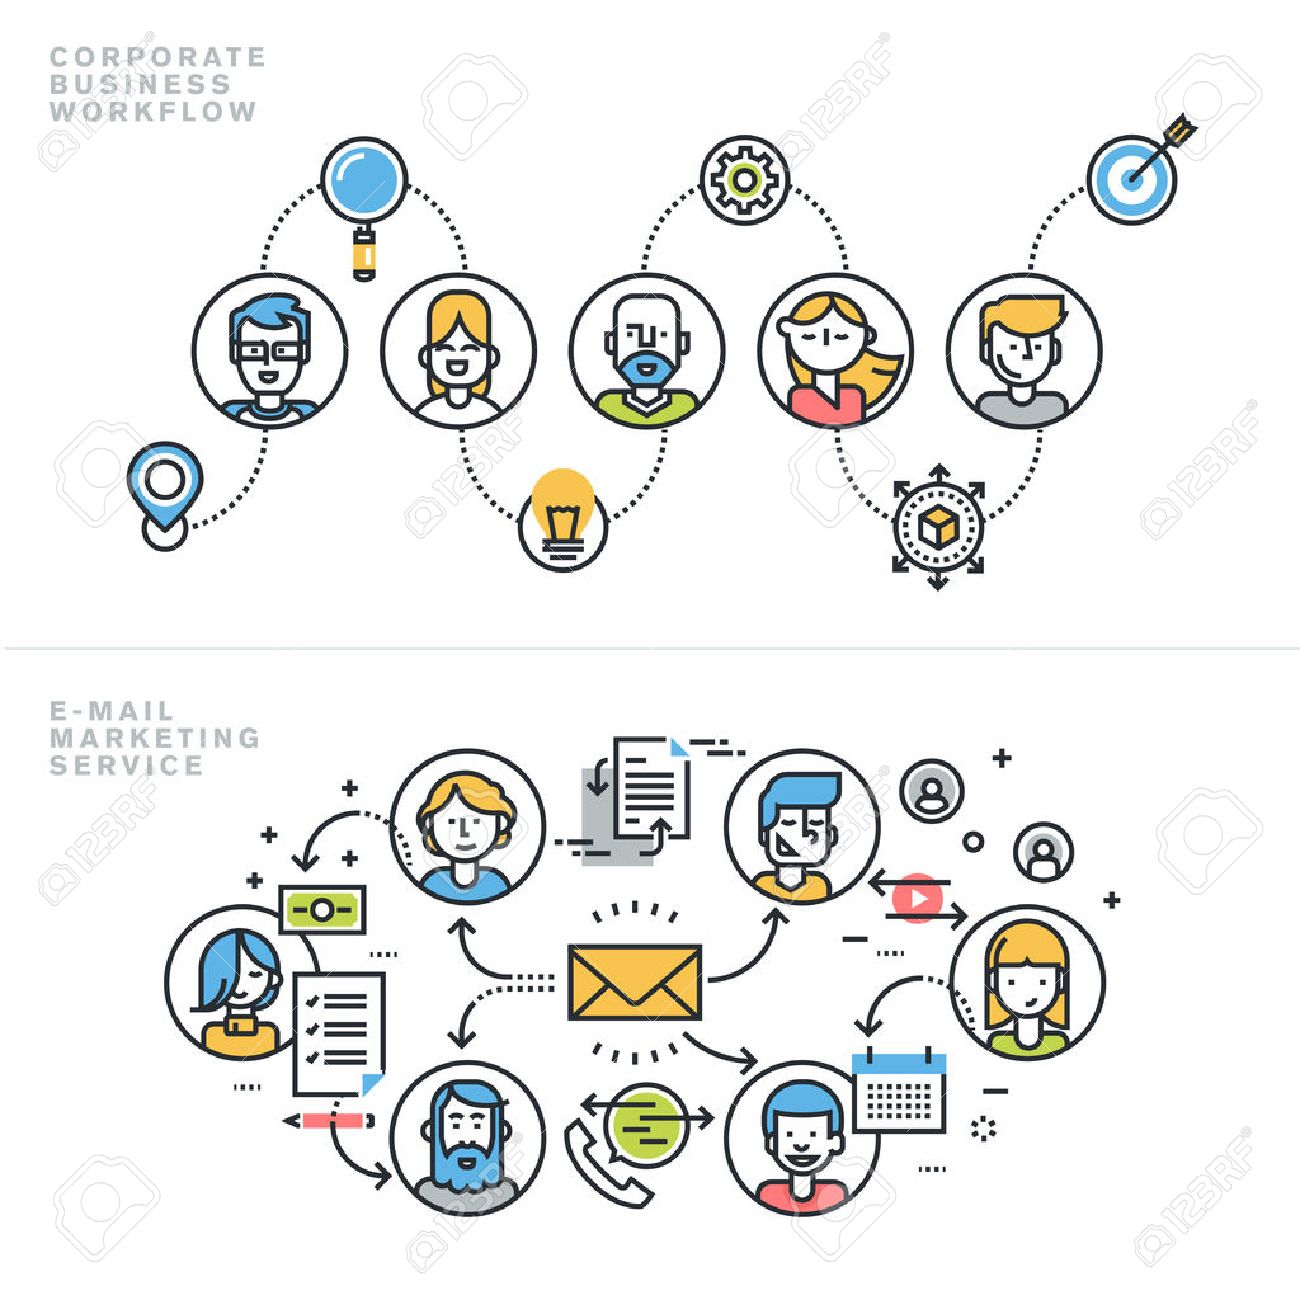 Flat line design concepts for corporate business workflow, company profile, teamwork, email marketing service, newsletter, customer relationship management, for website banner and landing page. Stock Vector - 47893159